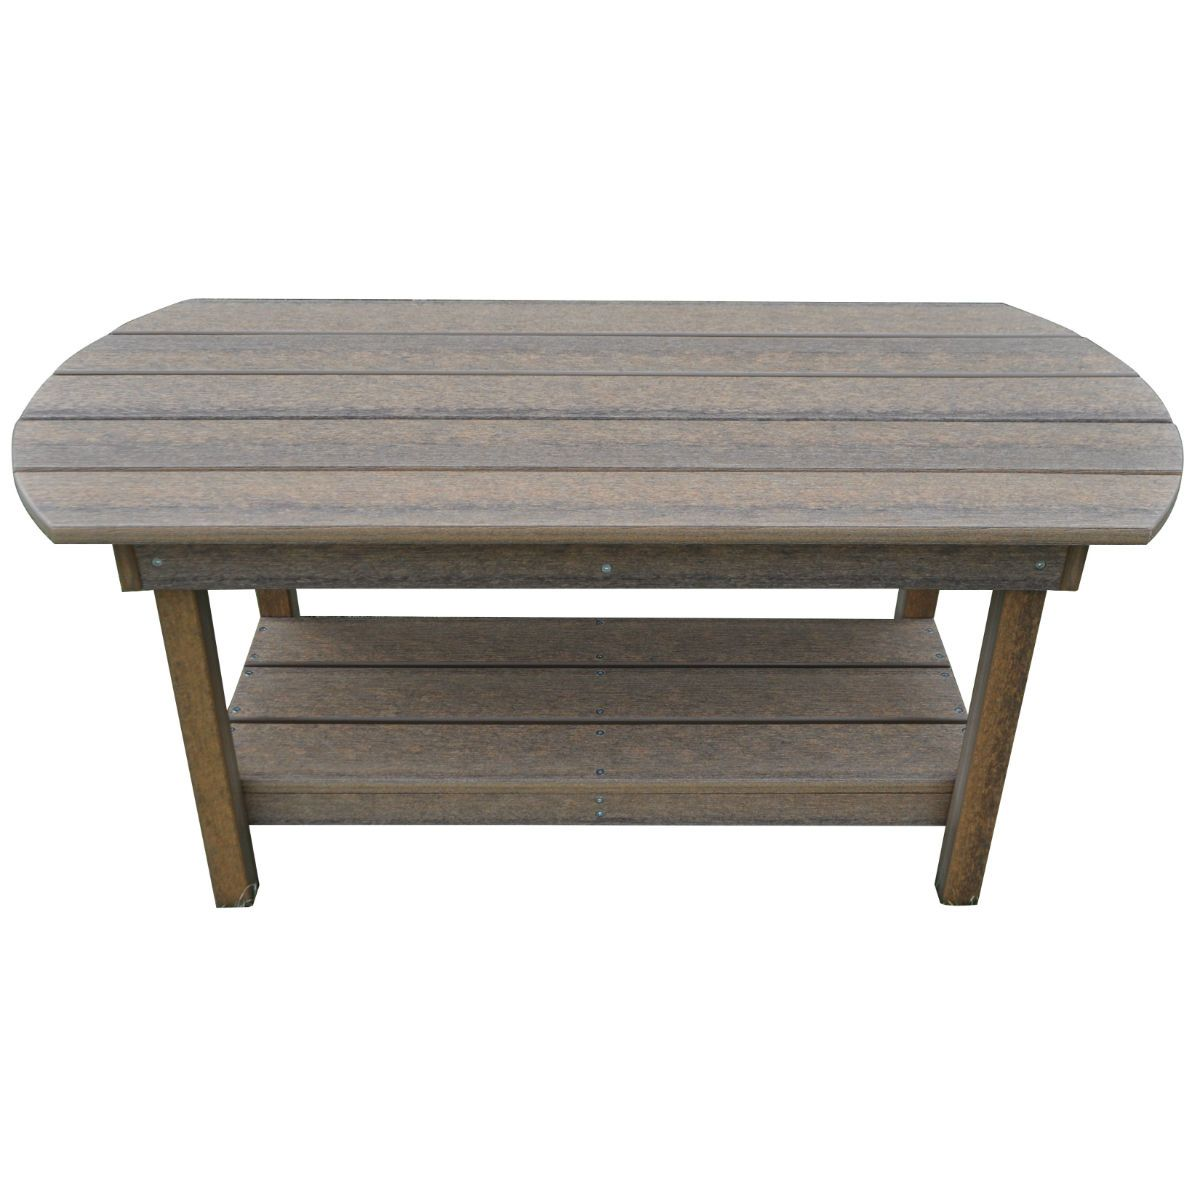 Outdoor Rustic Polywood Coffee Table Antique Mahogany Rustic Red - Polywood coffee table